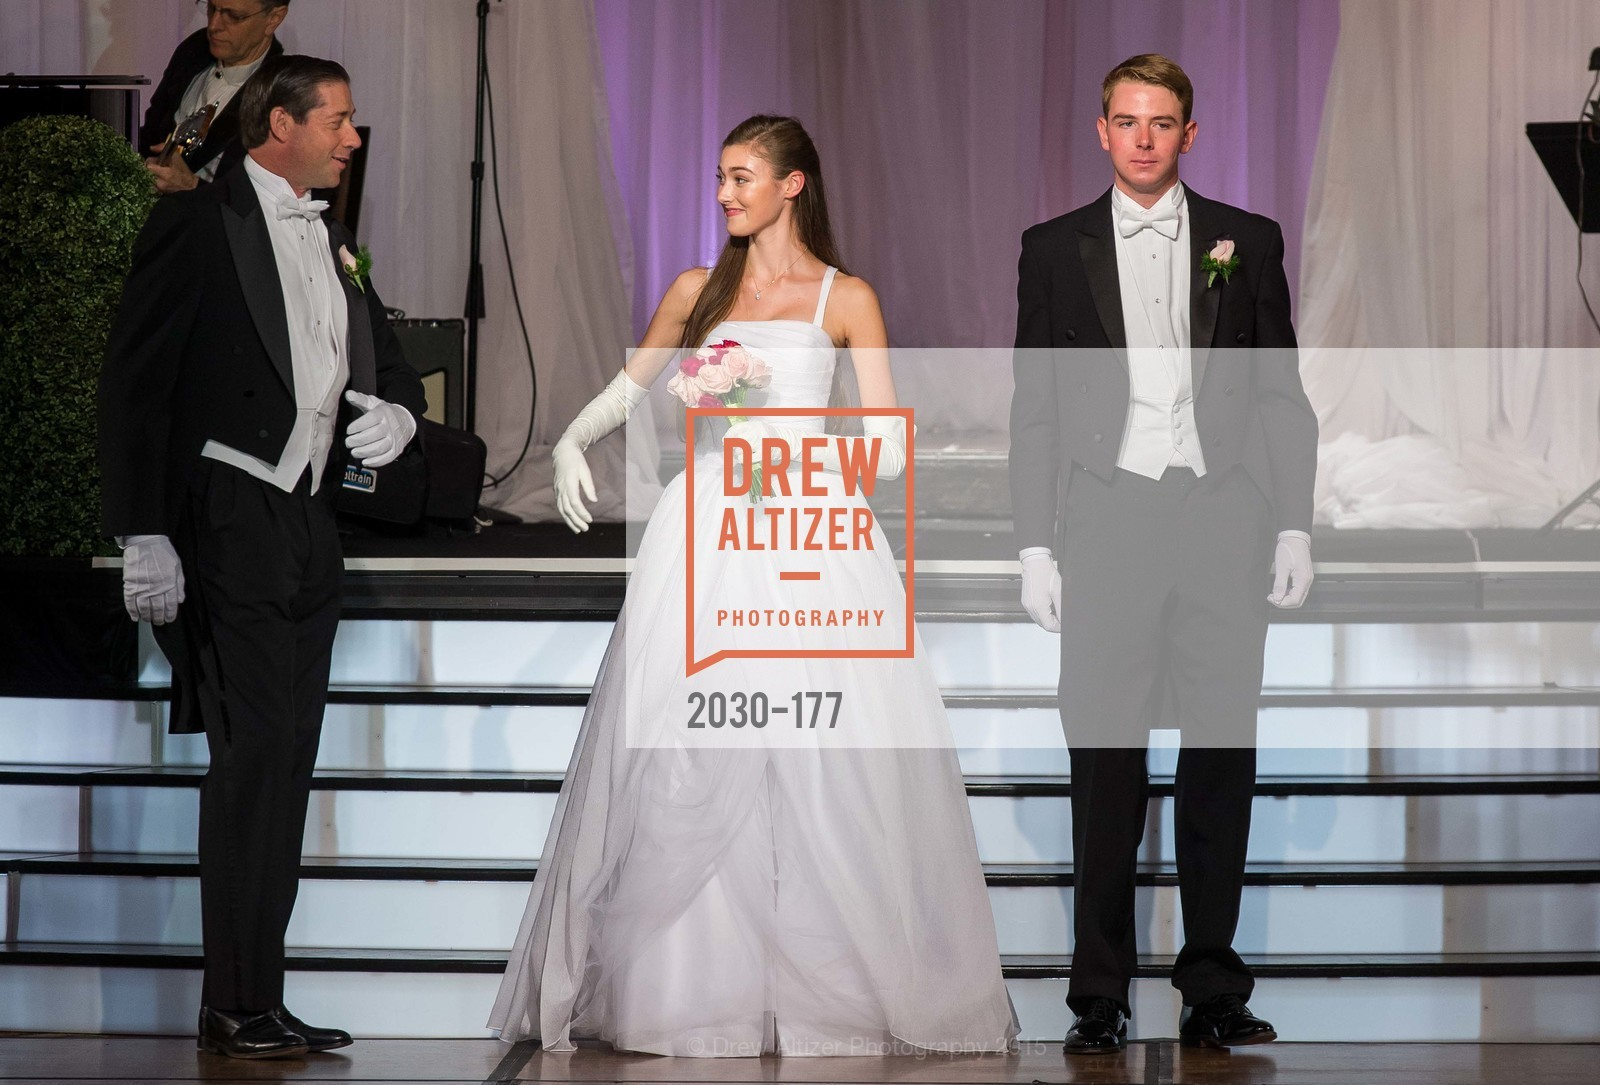 William Deringer Lamm, Madeleine Elizabeth Lamm, William Dana, The 2015 San Francisco Debutante Ball, The Westin St. Francis San Francisco Union Square. 335 Powell St, June 20th, 2015,Drew Altizer, Drew Altizer Photography, full-service agency, private events, San Francisco photographer, photographer california